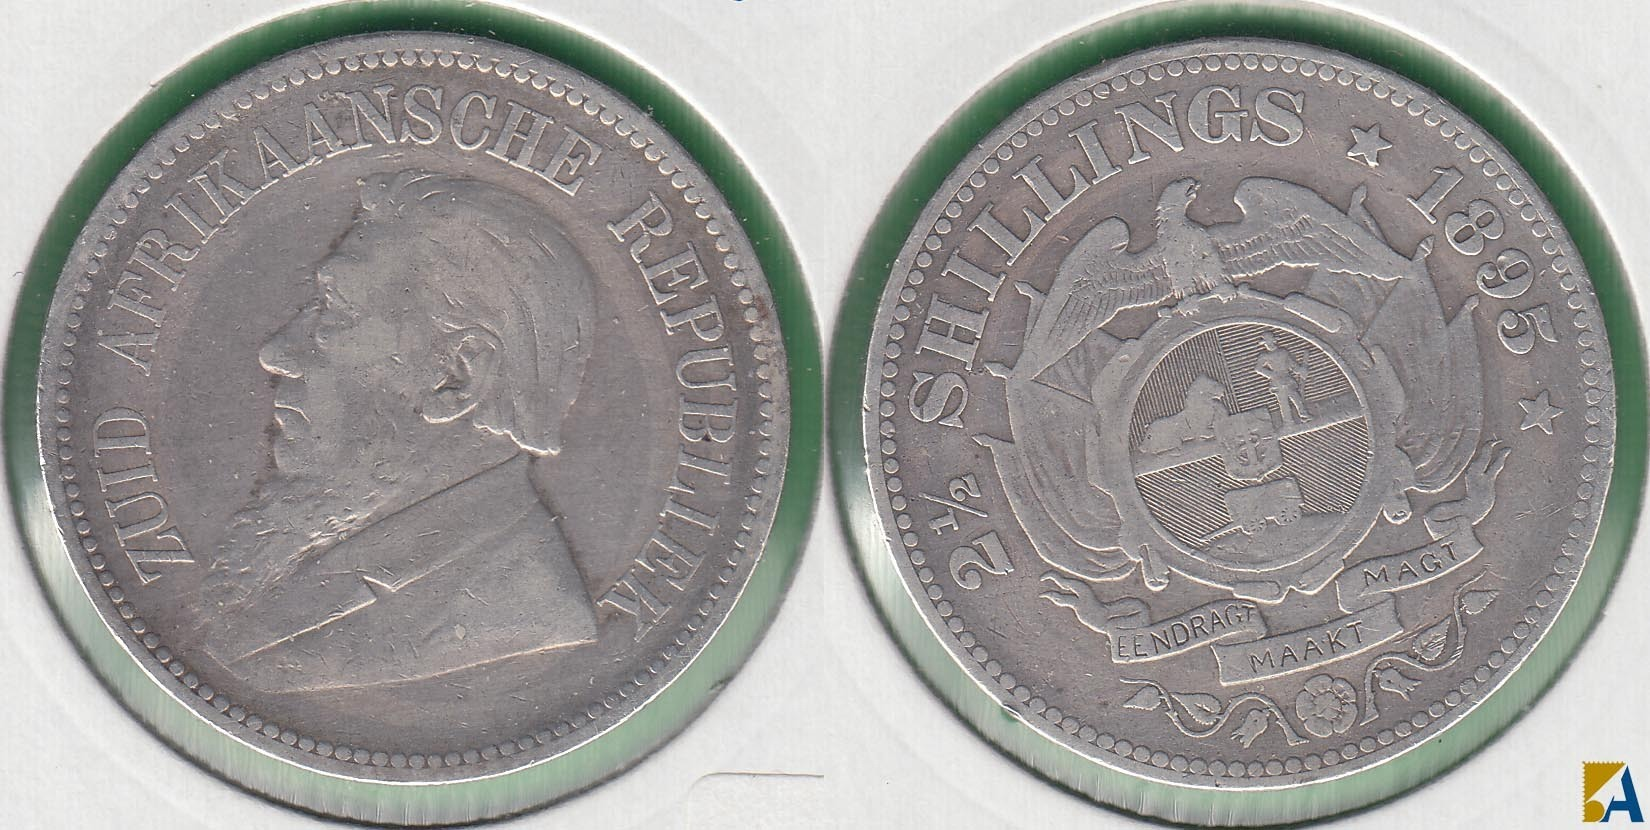 SUDAFRICA - SOUTH AFRICA. 2 1/2 SHILLINGS DE 1895. PLATA 0.925.